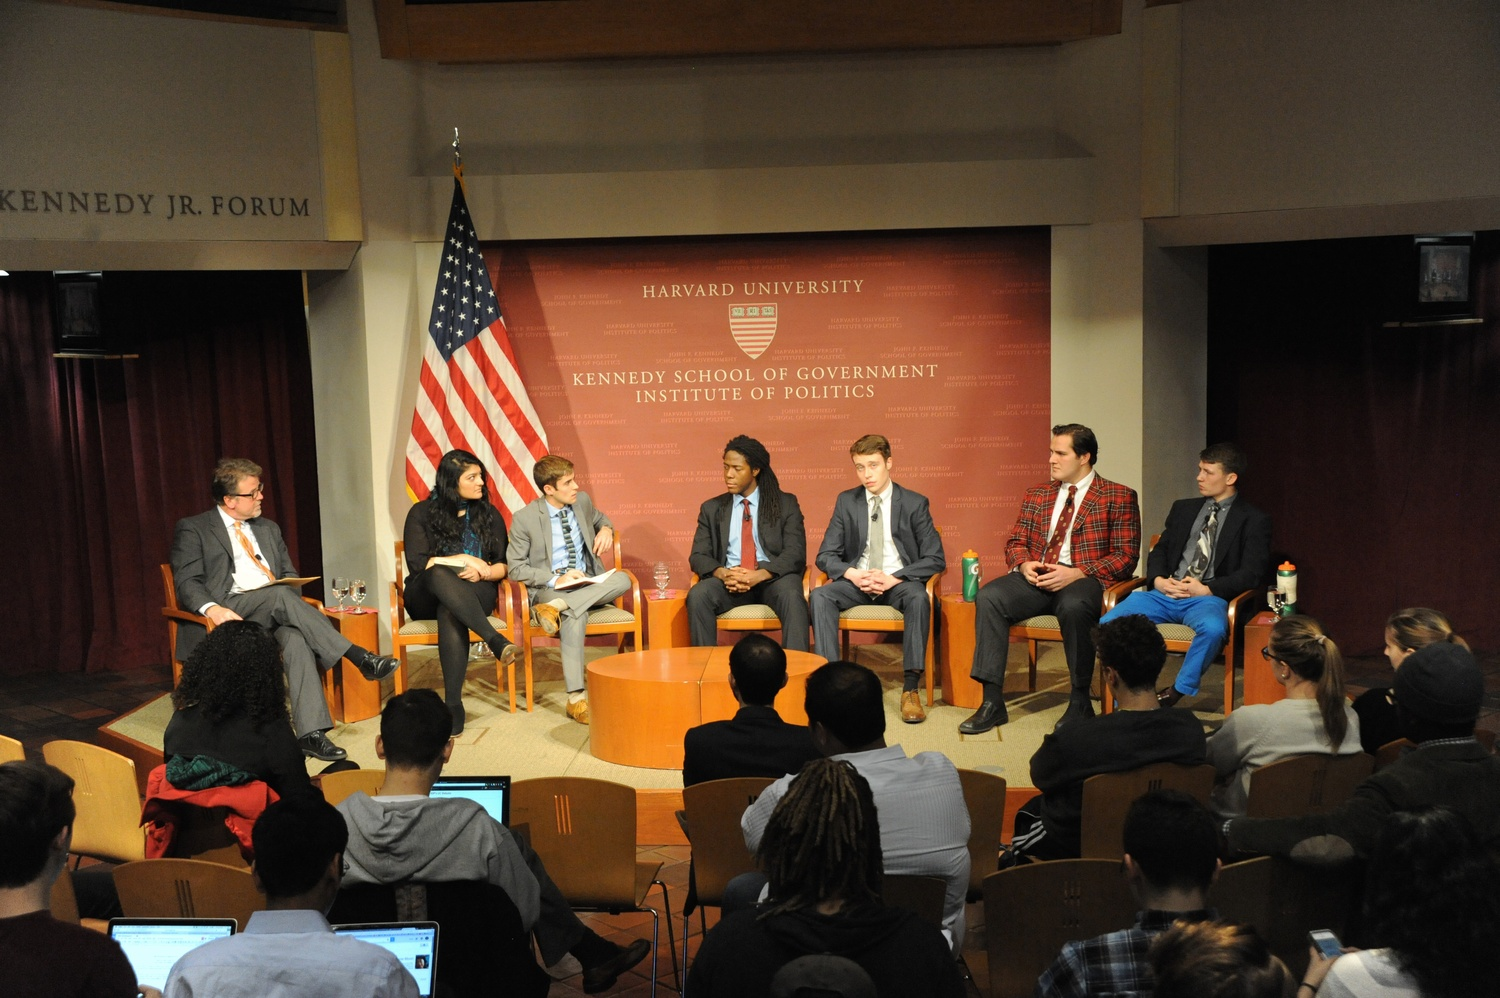 Undergraduate Council candidates debated at the Institute of Politics on Tuesday evening.